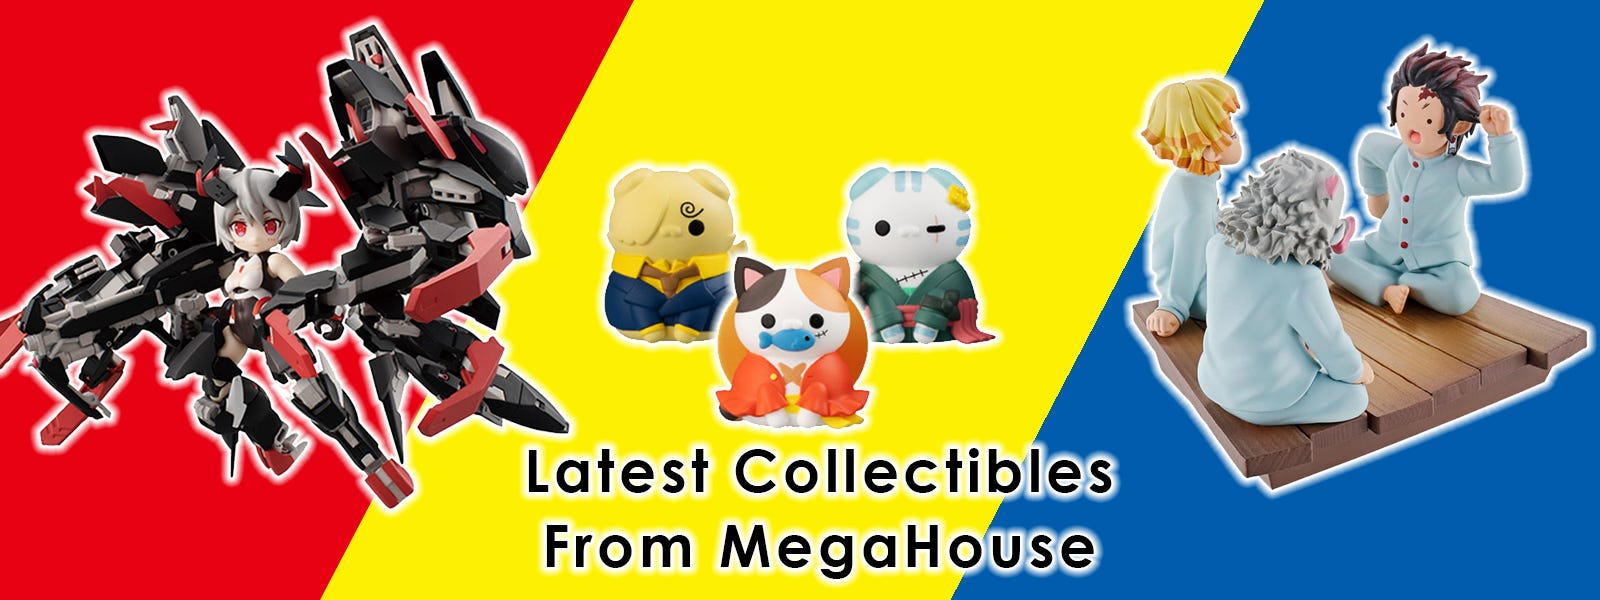 Latest Collectibles From MegaHouse